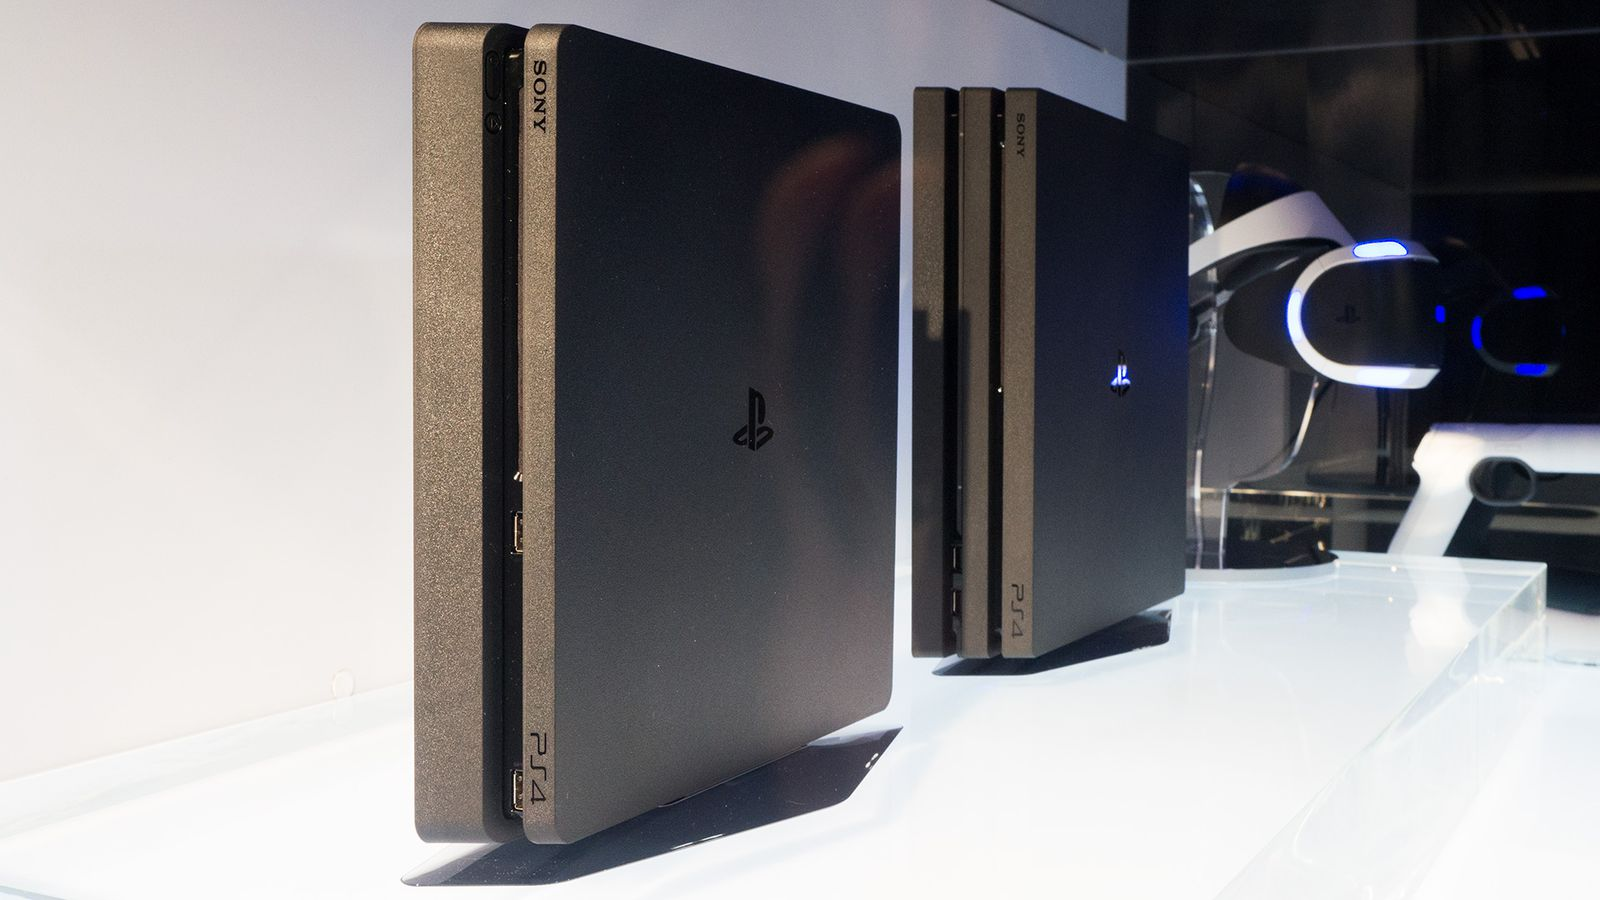 PS4 slim finally upgraded to 1 TB hard drive in North America